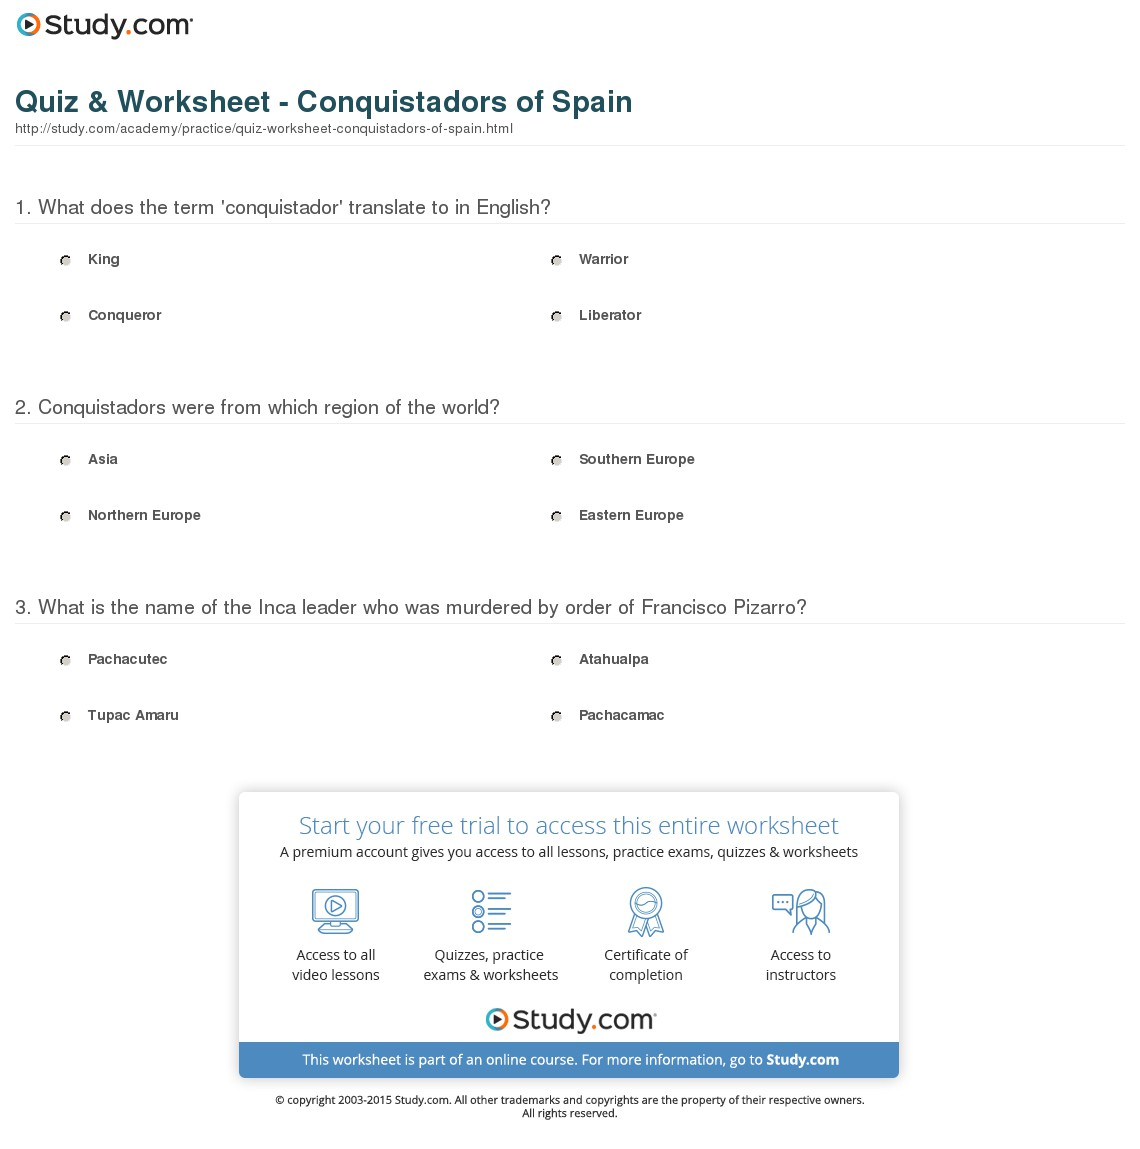 028 Translate Essay To Spanish Example Quiz Worksheet Conquistadors Of Staggering My Into What Does Mean In Full